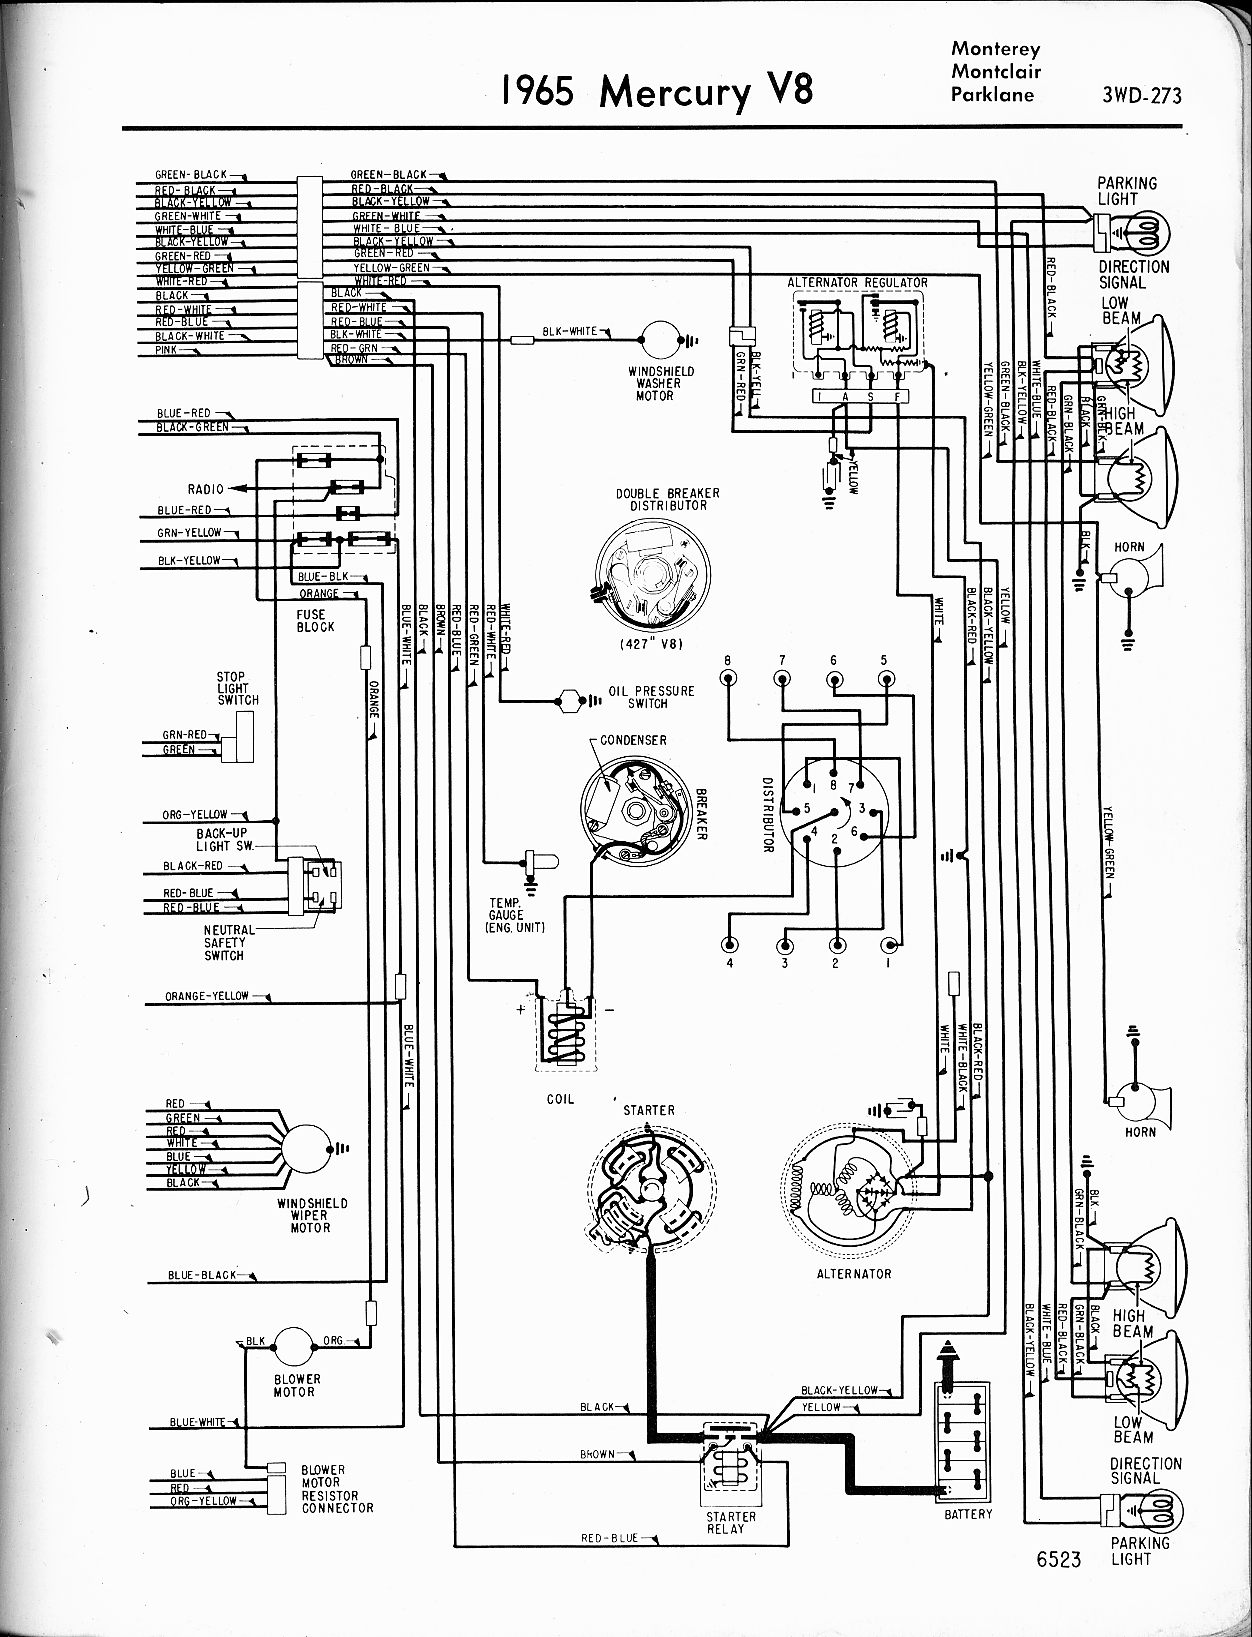 1957 Ford Thunderbird Wiring Diagram. Ford. Wiring Diagrams Instructions